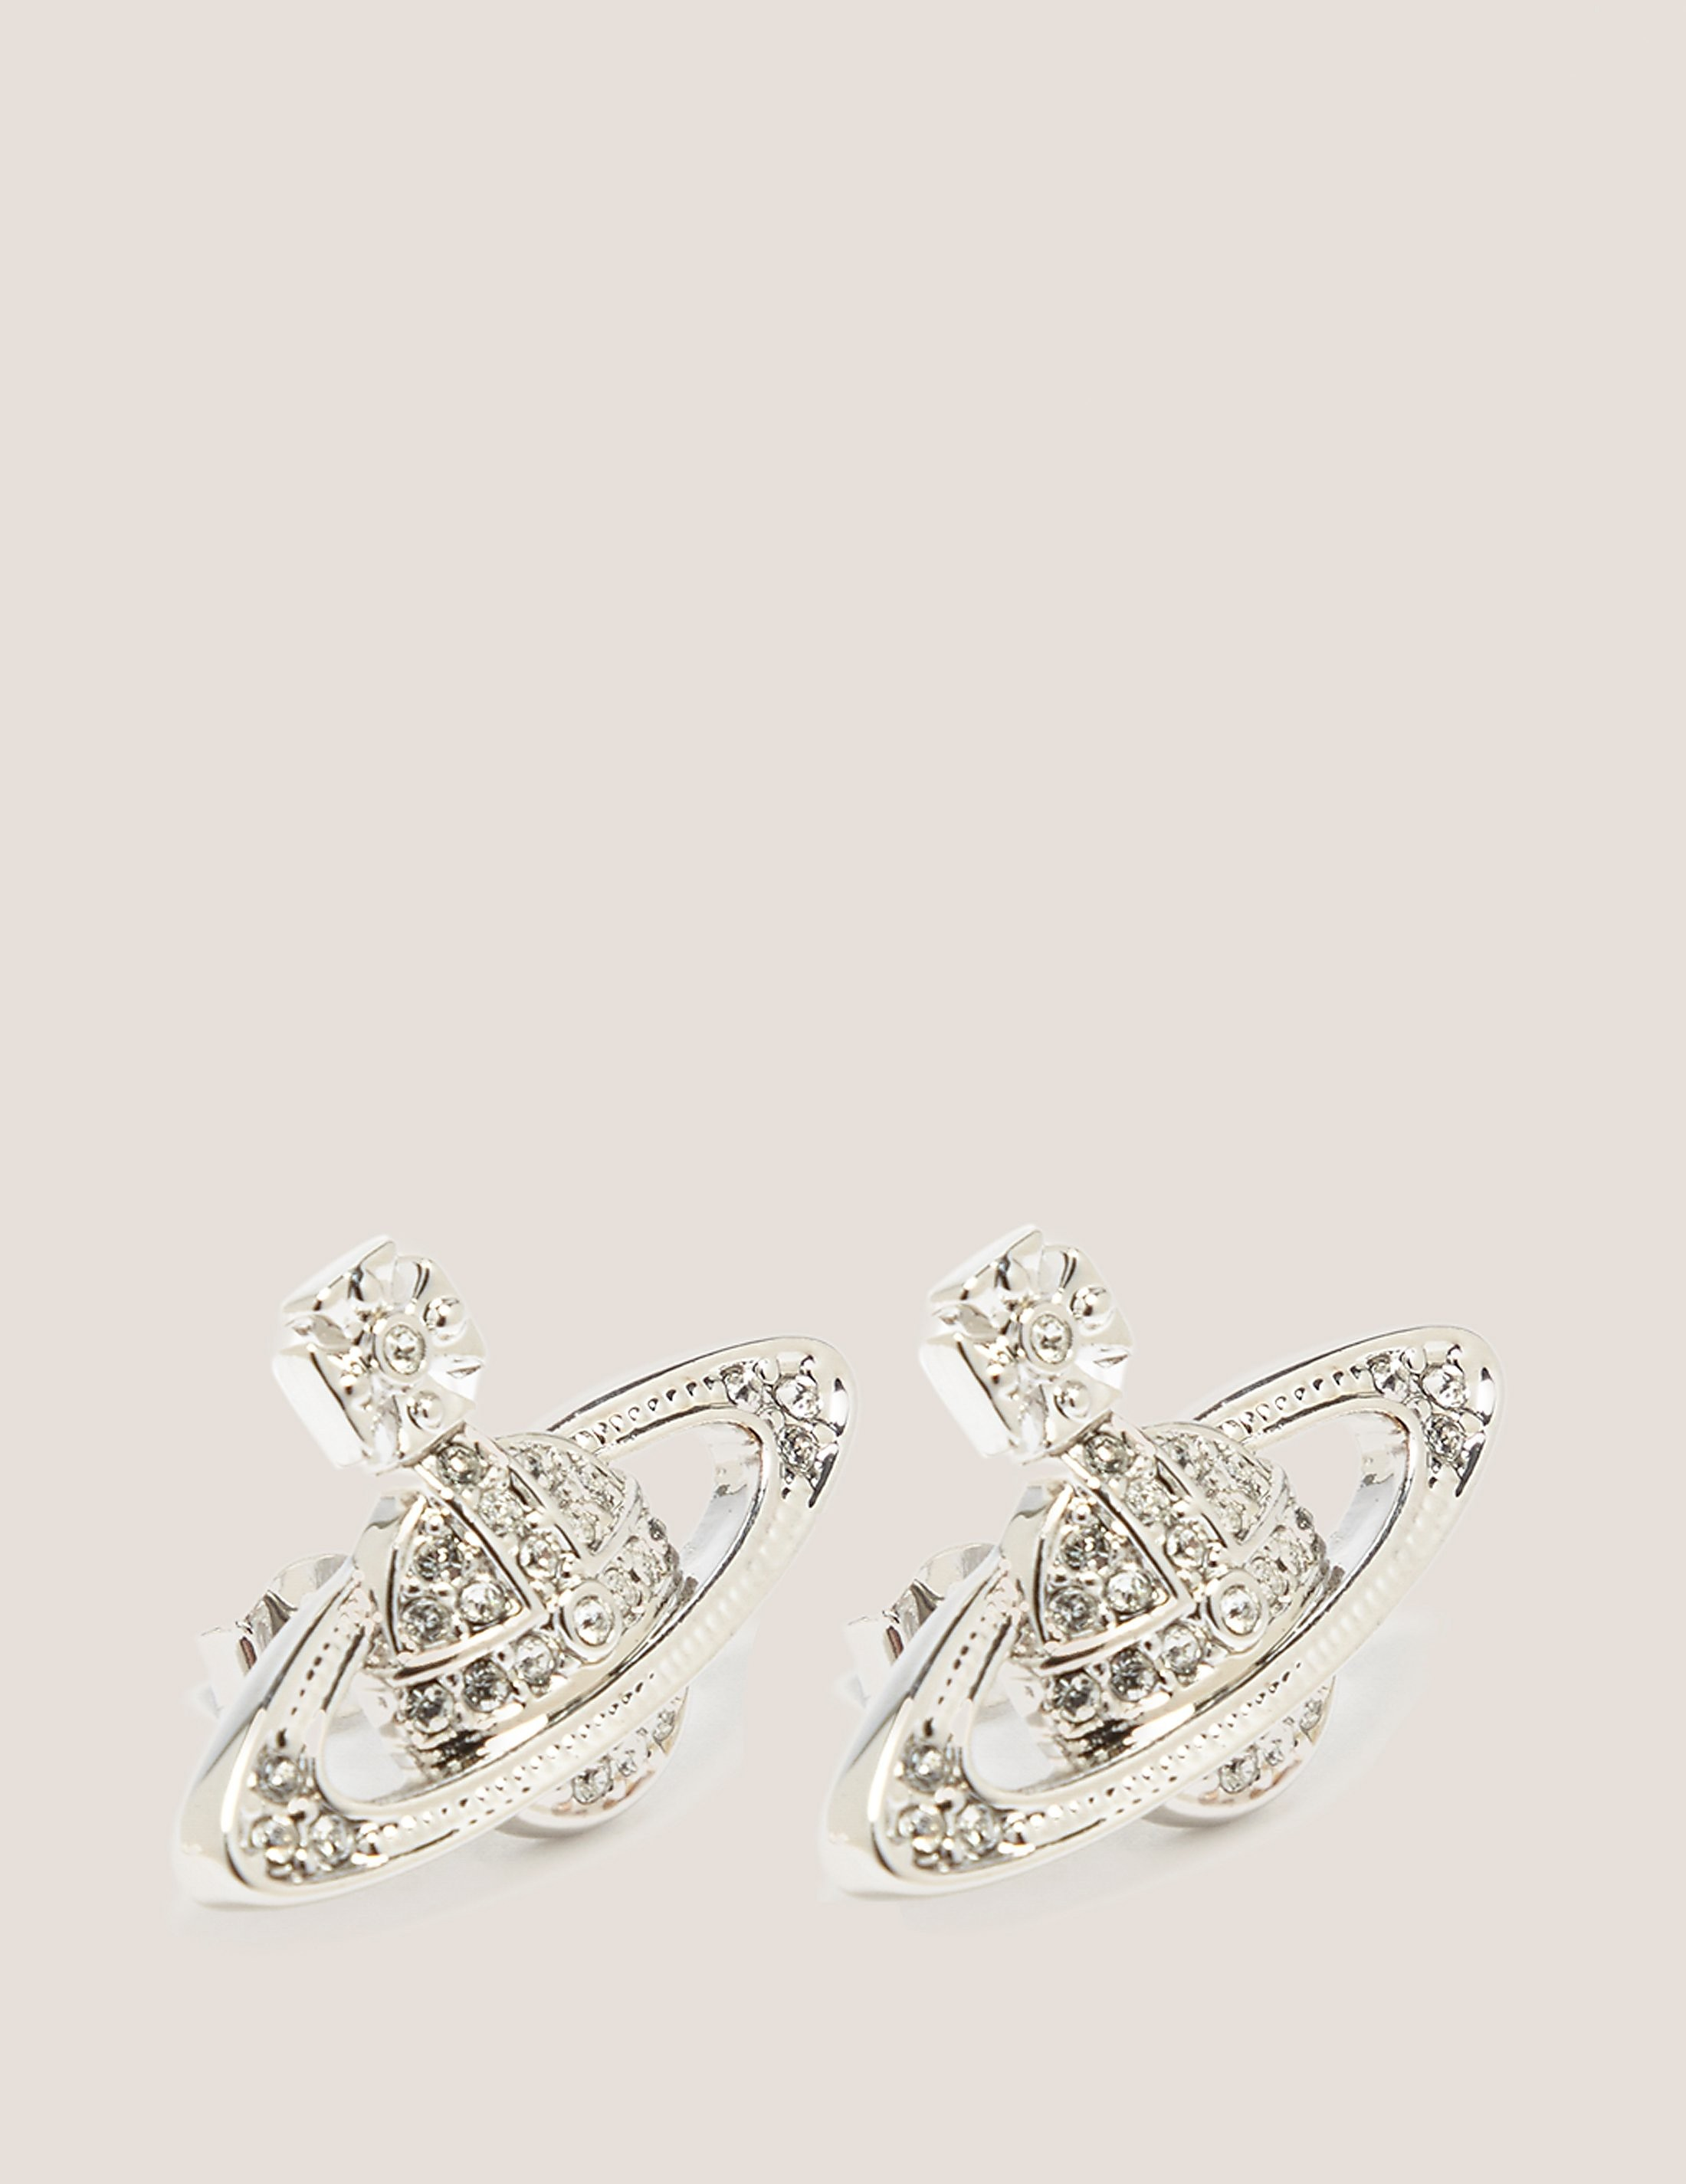 Vivienne Westwood Mini Orb Earrings